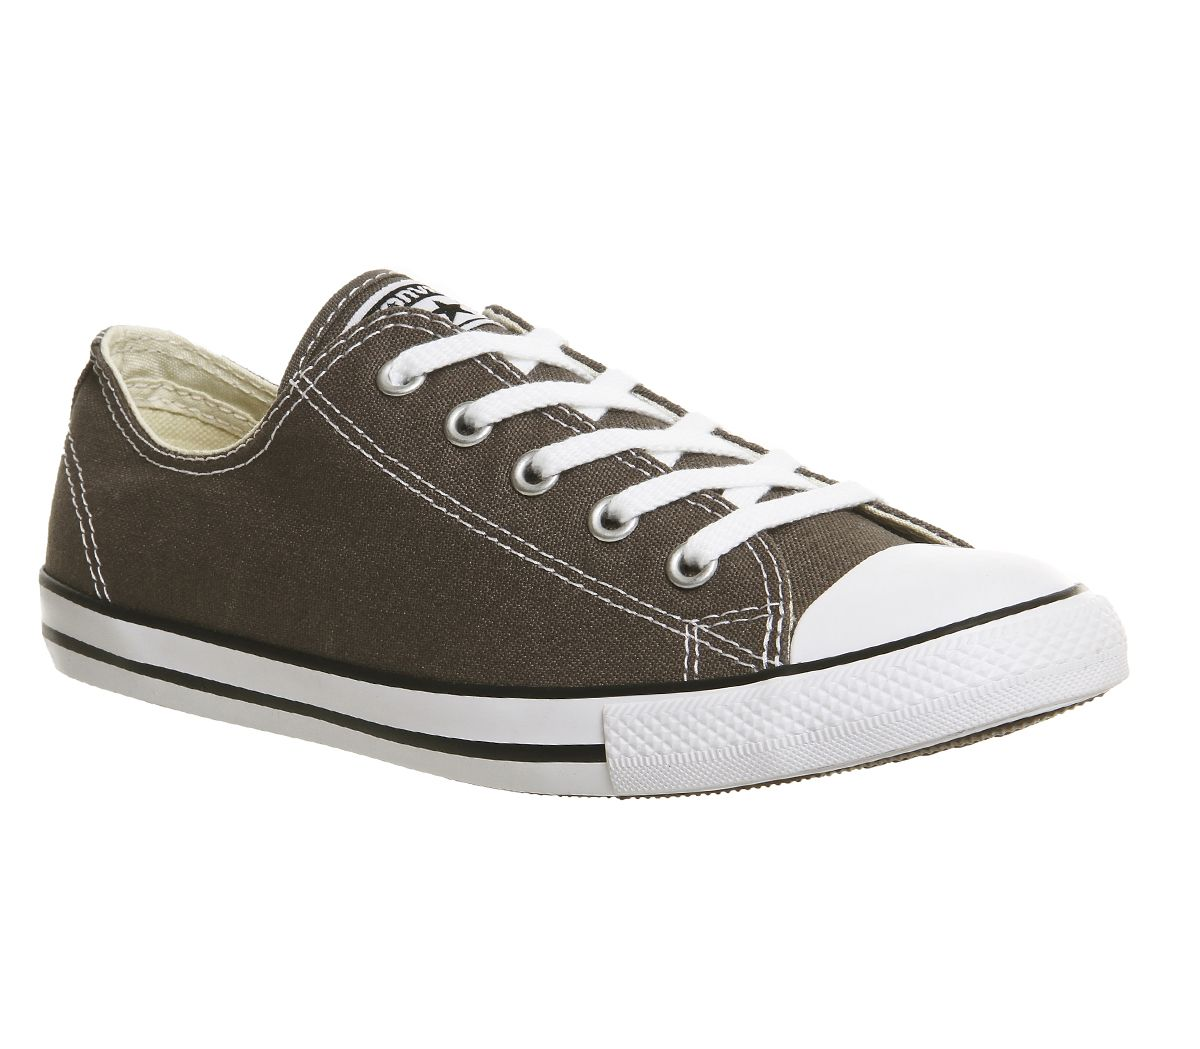 b9dadca38d9bb3 Converse All Star Dainty Charcoal - Hers trainers